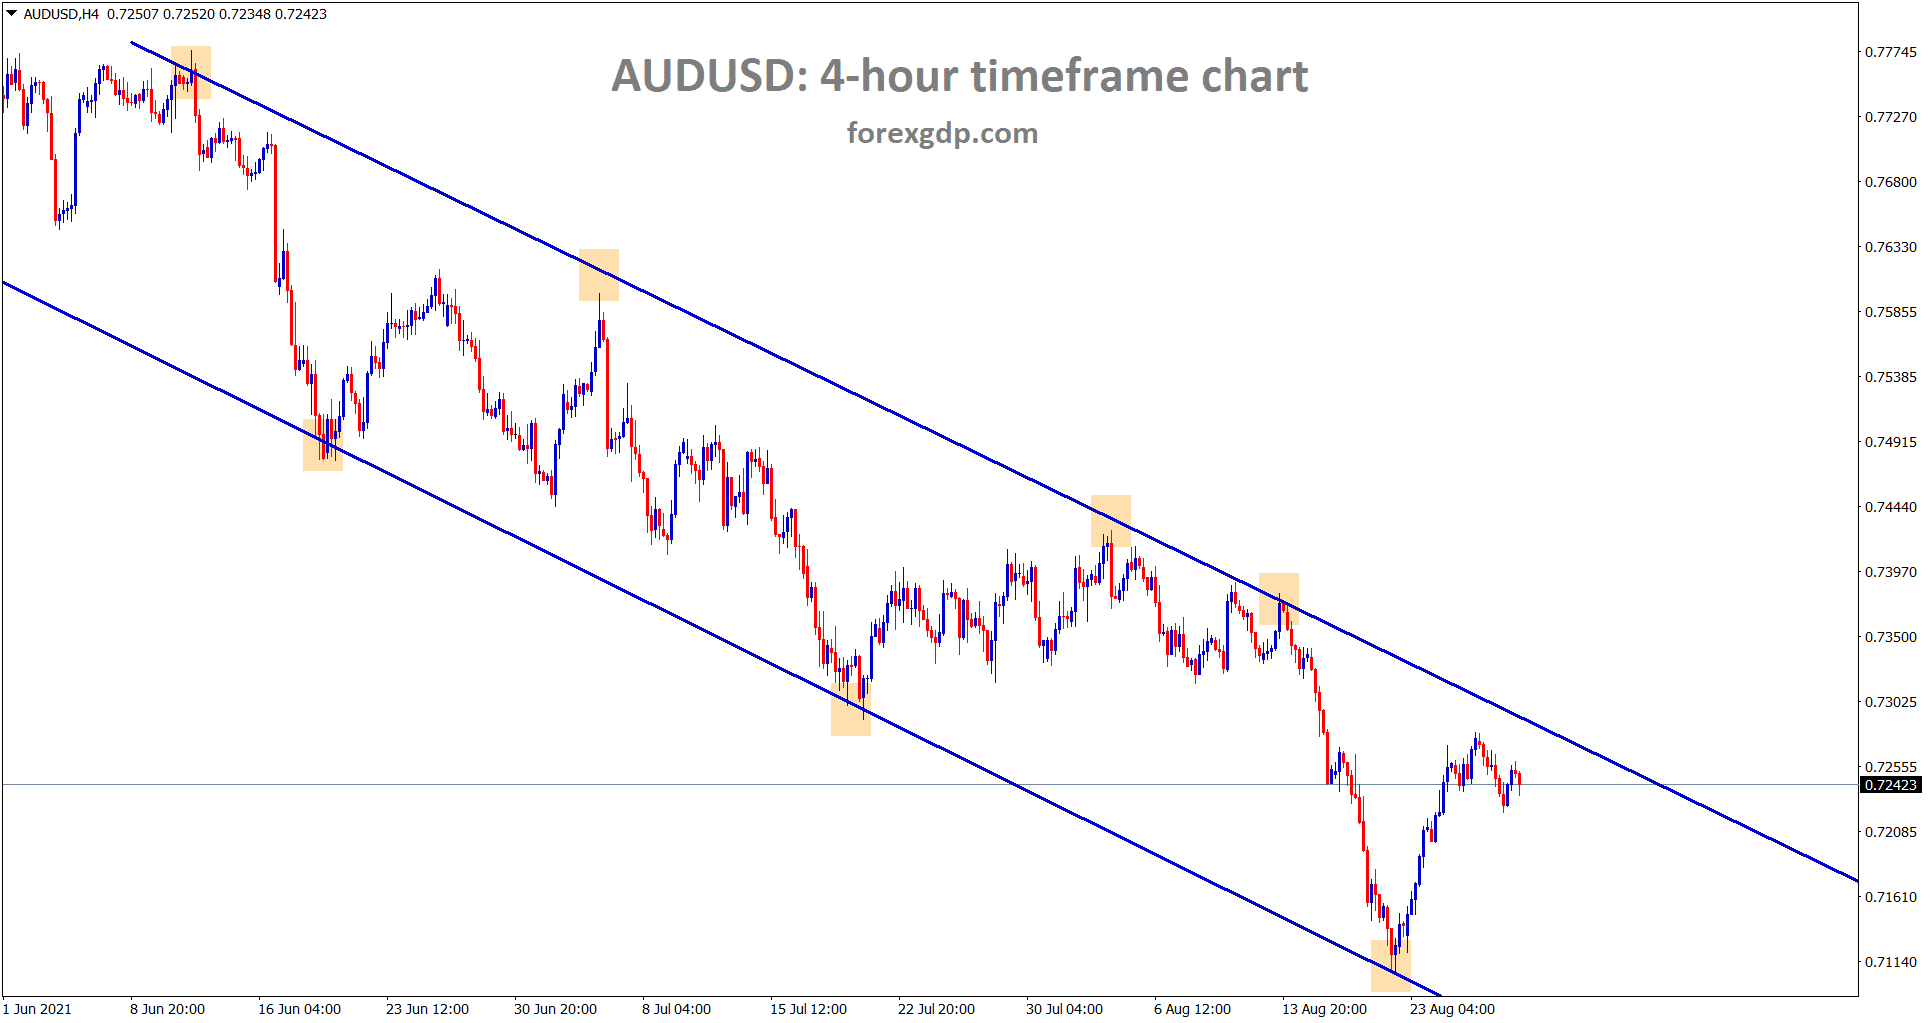 AUDUSD is still moving in a downtrend in a descending channel range